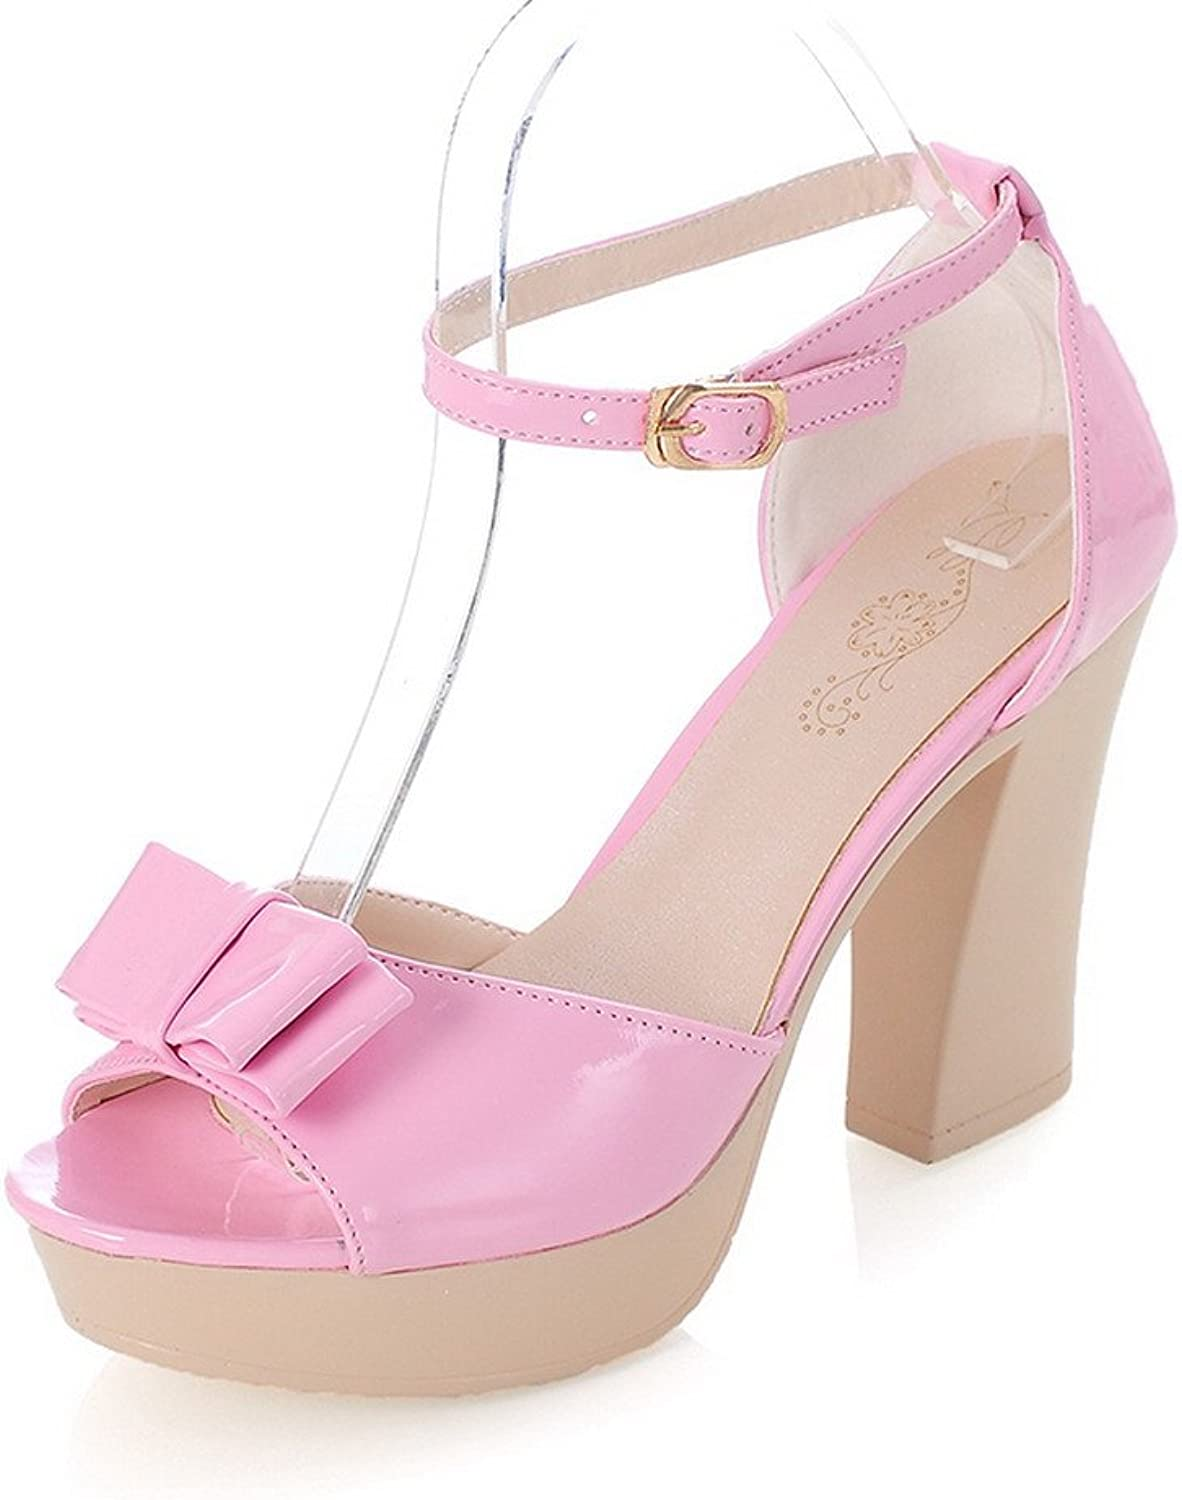 AmoonyFashion Womens Open Peep Toes High Heel Chunky Patent Leather PU Solid Sandals with Bowknot, Pink, 7.5 B(M) US